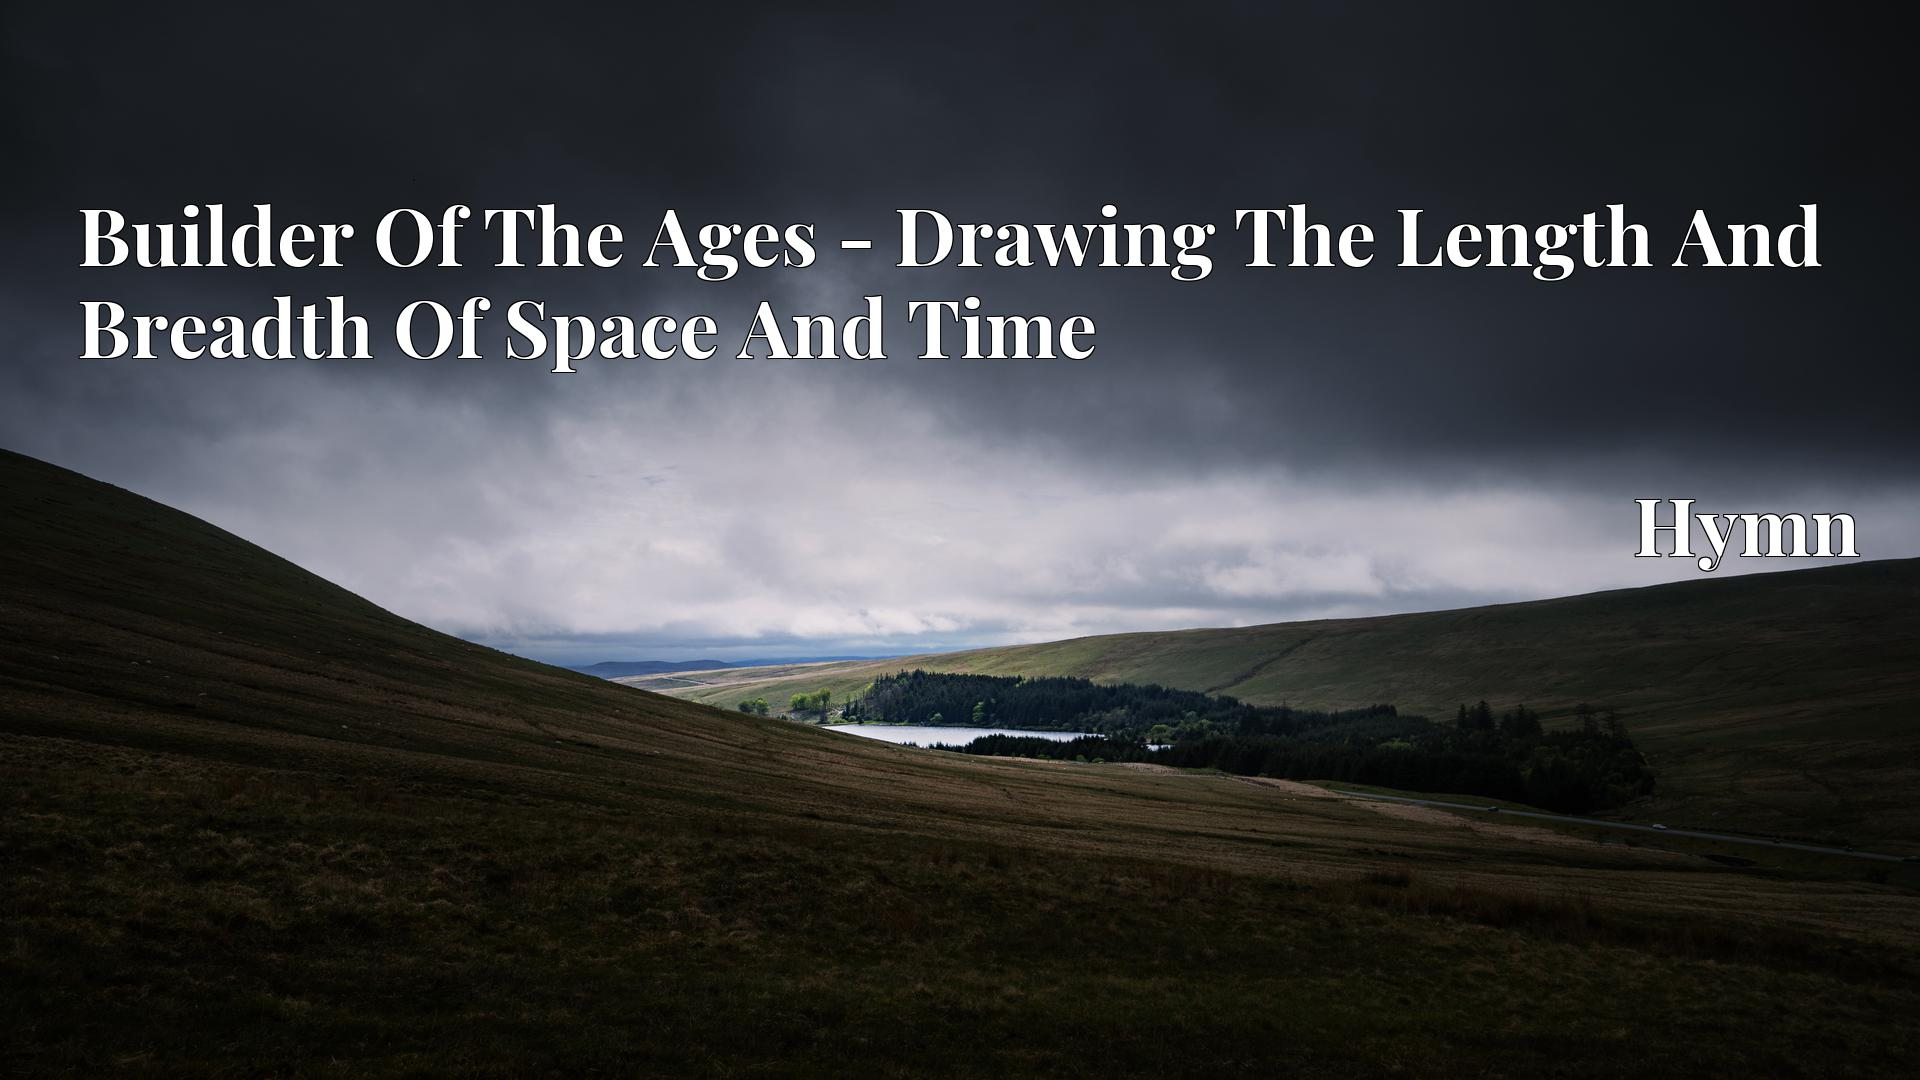 Builder Of The Ages - Drawing The Length And Breadth Of Space And Time Hymn